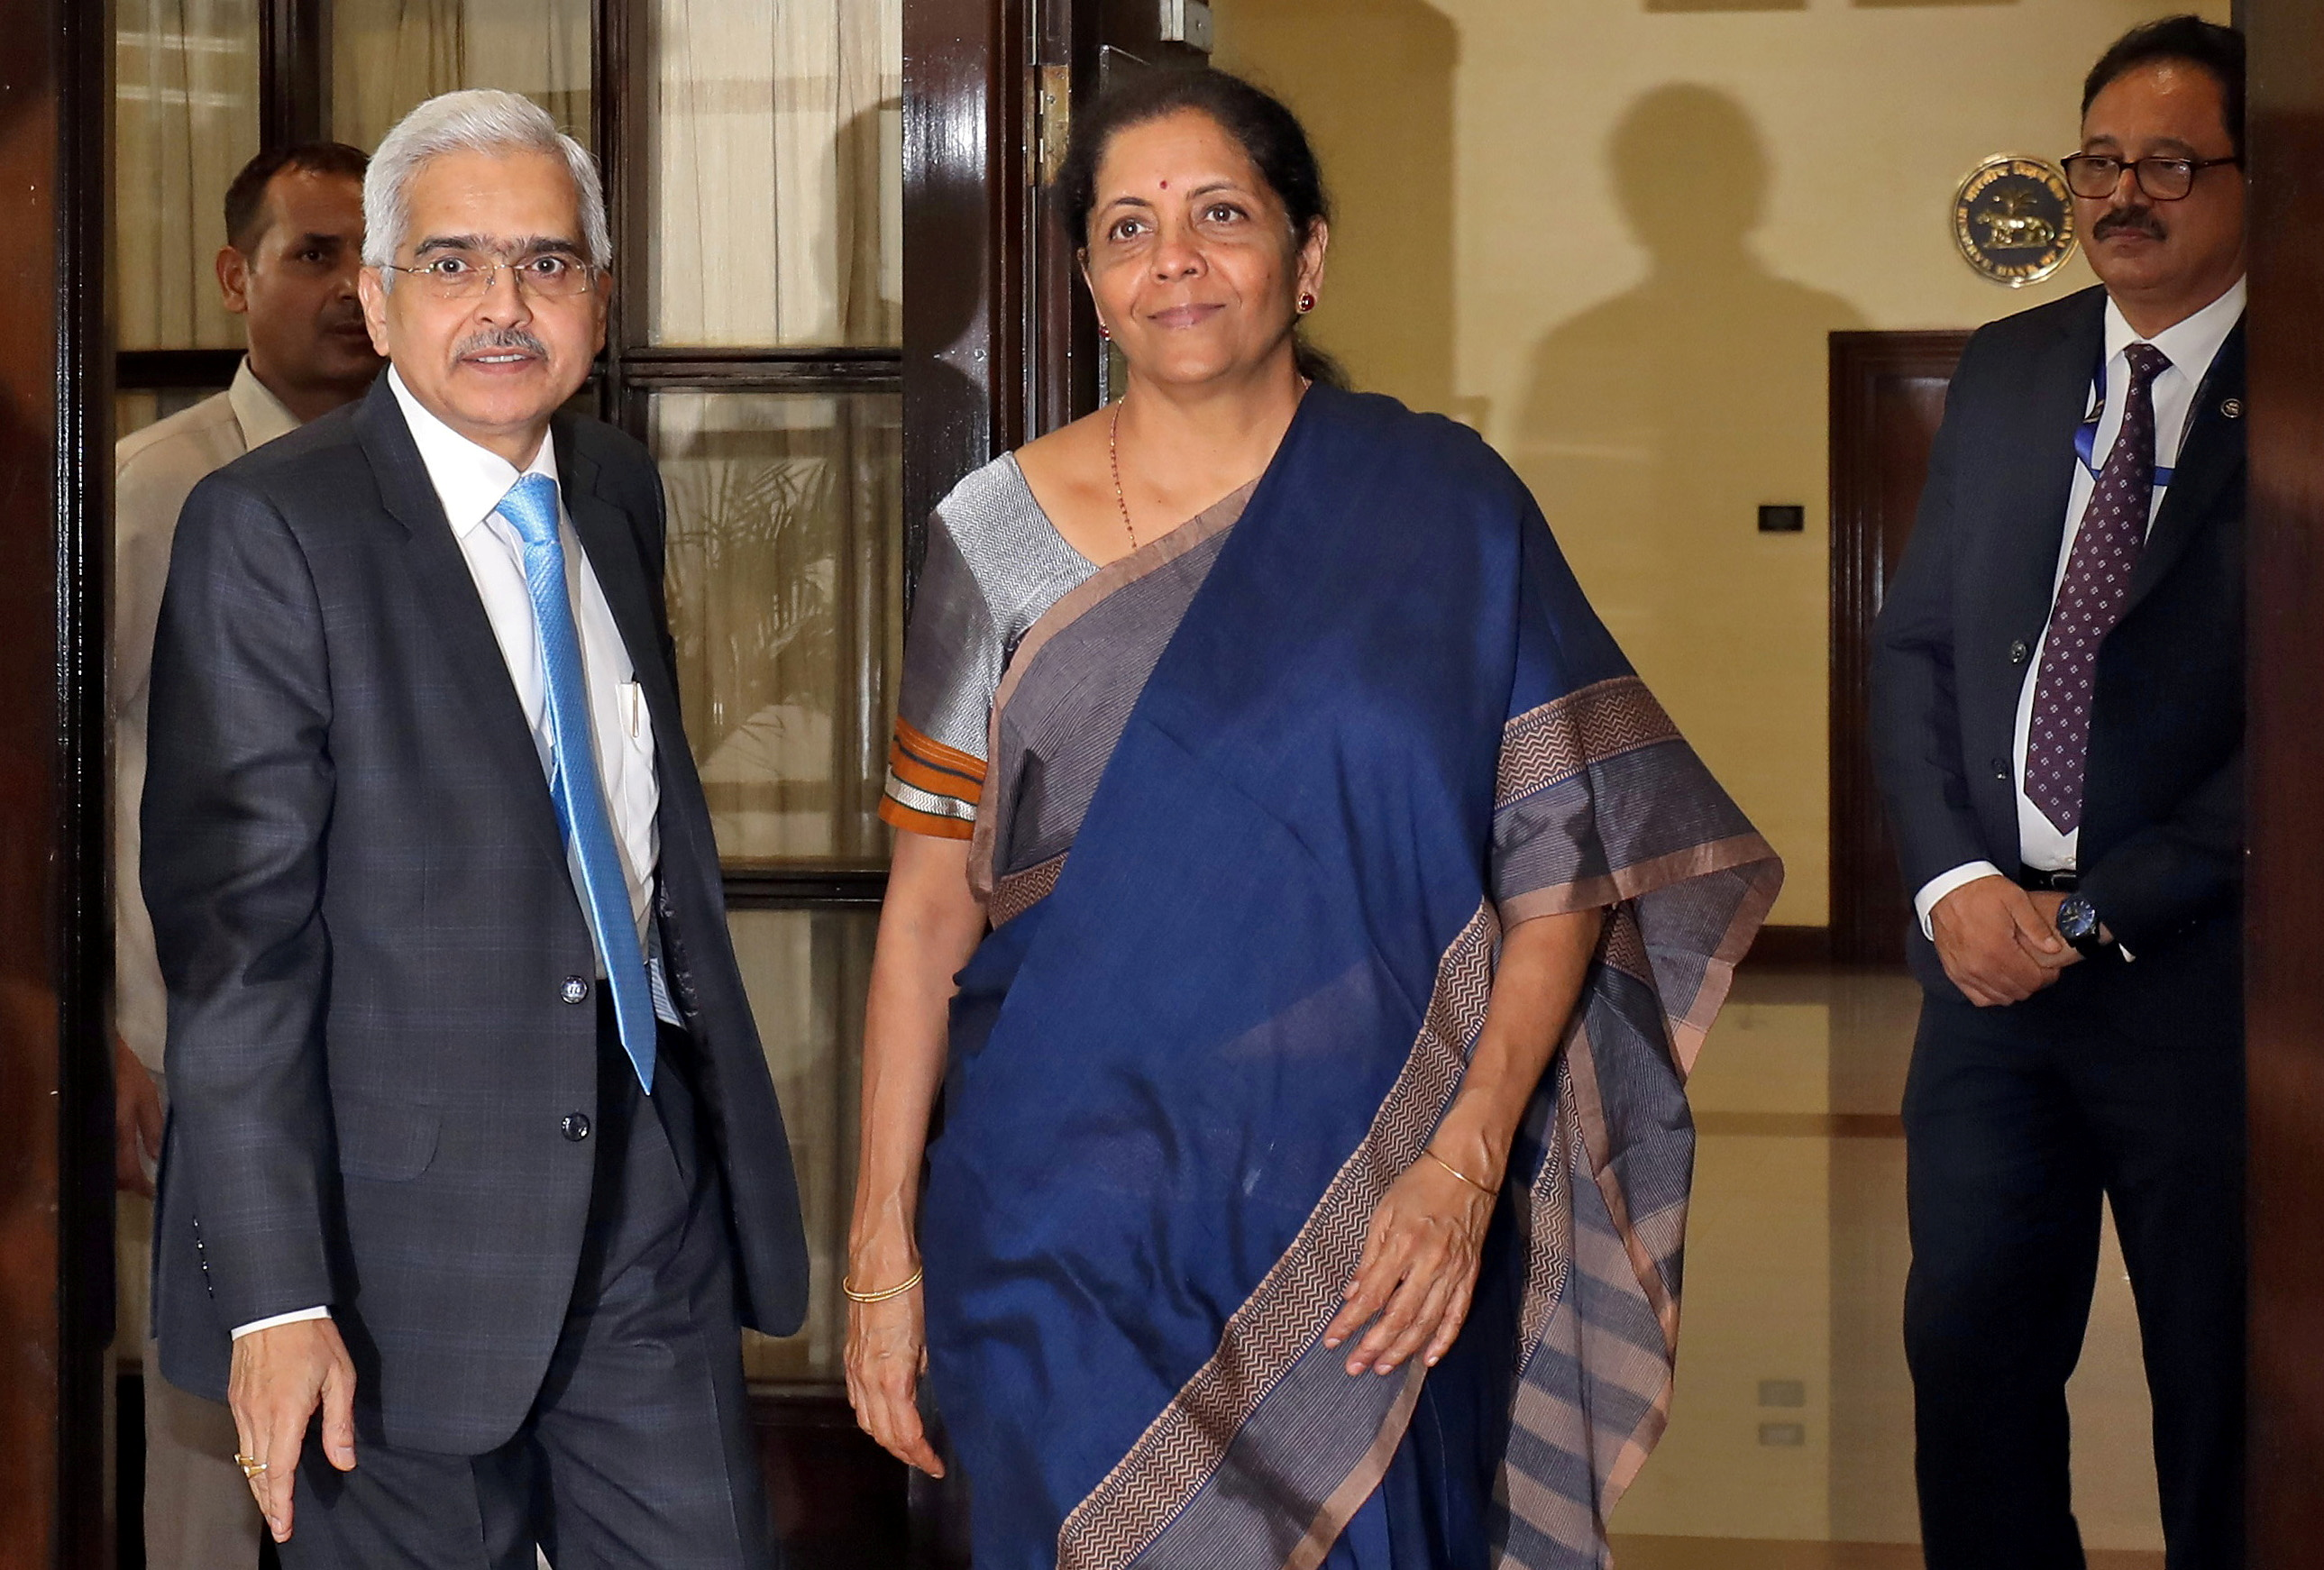 India's Finance Minister Nirmala Sitharaman and the Reserve Bank of India (RBI) Governor Shaktikanta Das arrive to attend the RBI's central board meeting in New Delhi, India July 8, 2019. REUTERS/Anushree Fadnavis